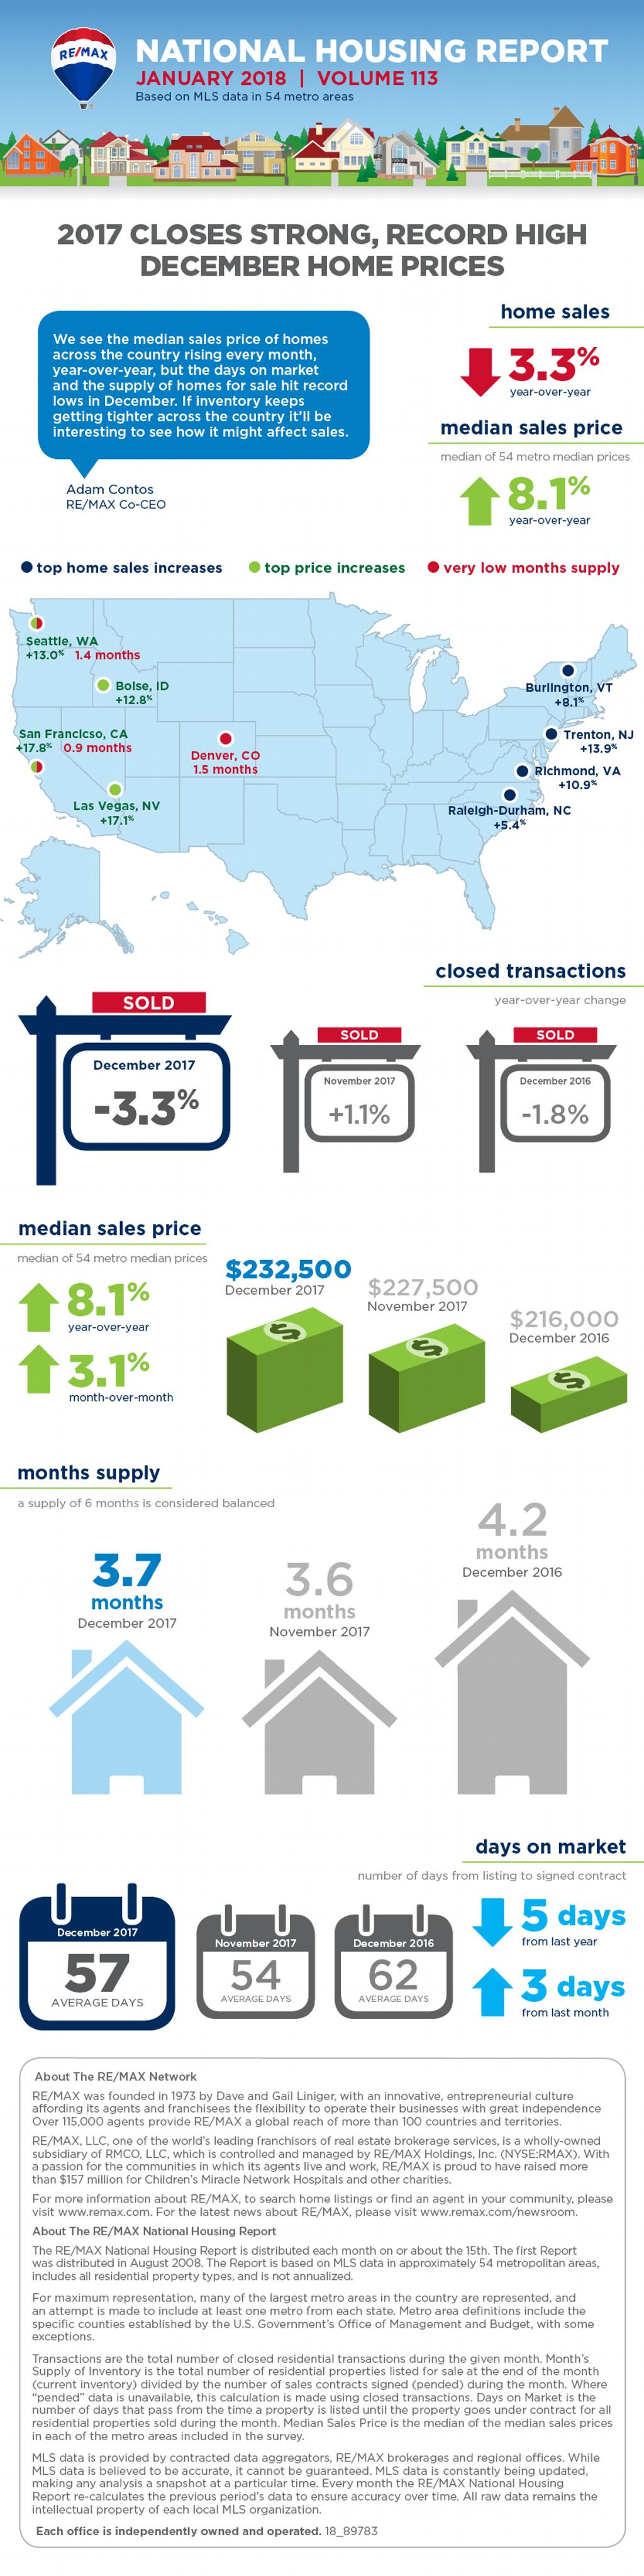 RE/MAX National Housing Report January 2018